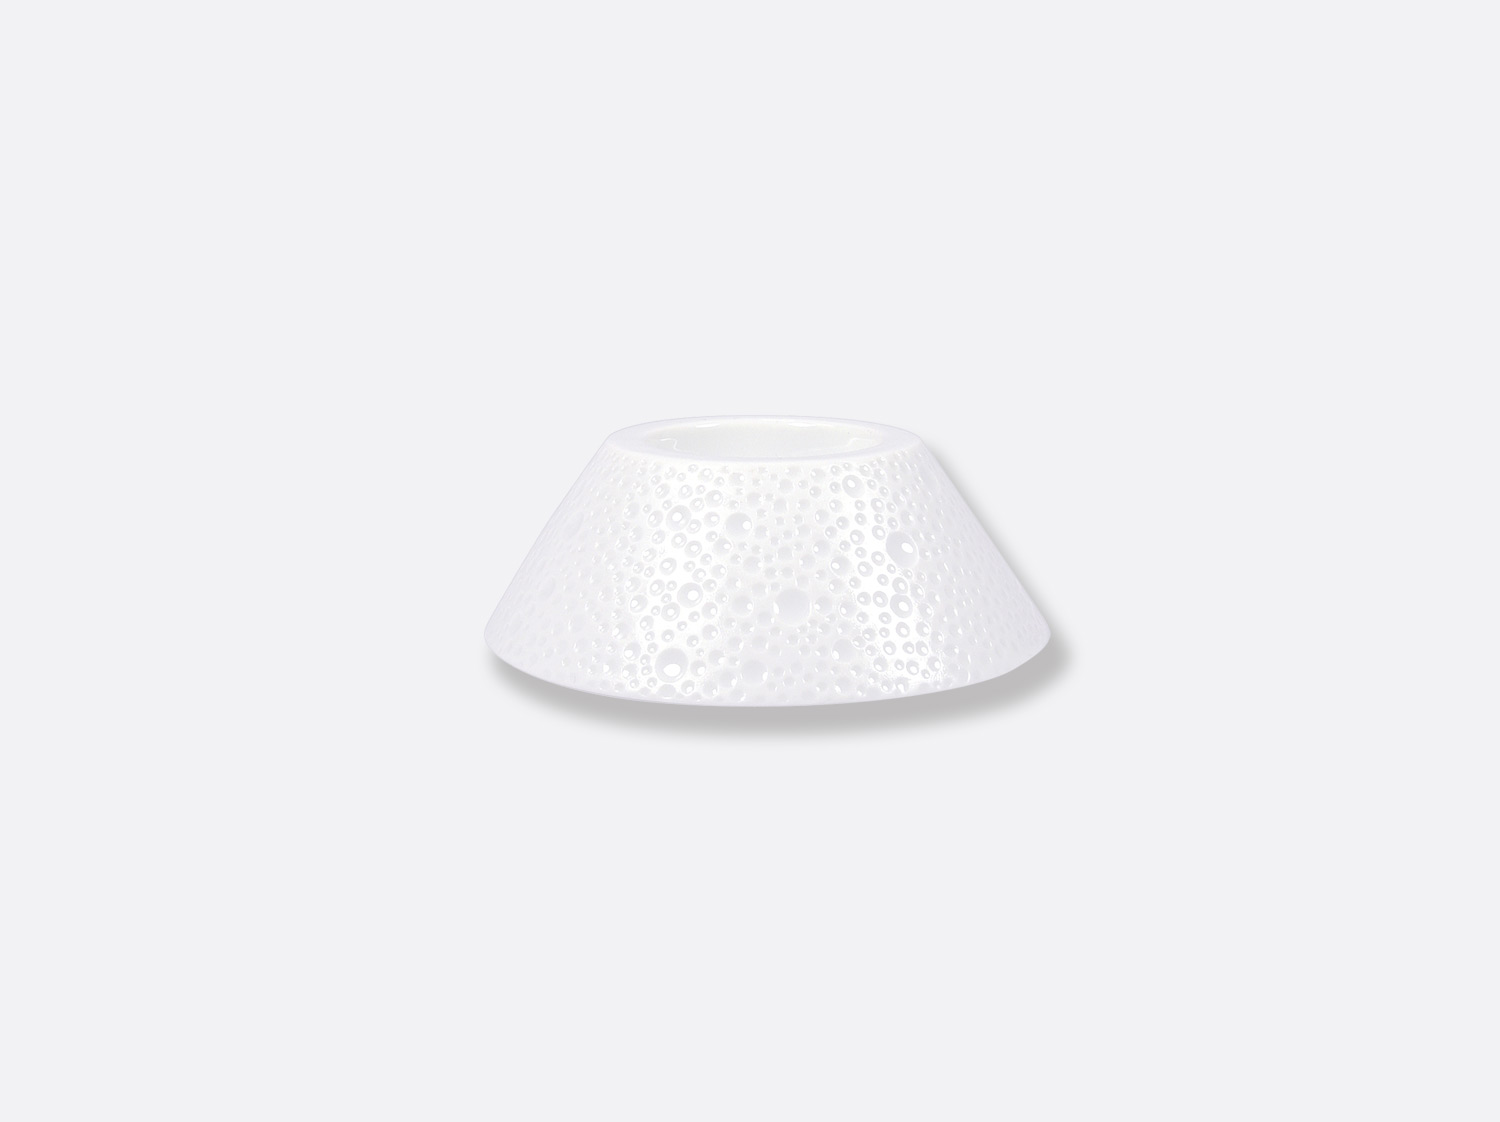 Coquetier 10,5 cm en porcelaine de la collection ECUME BLANC Bernardaud